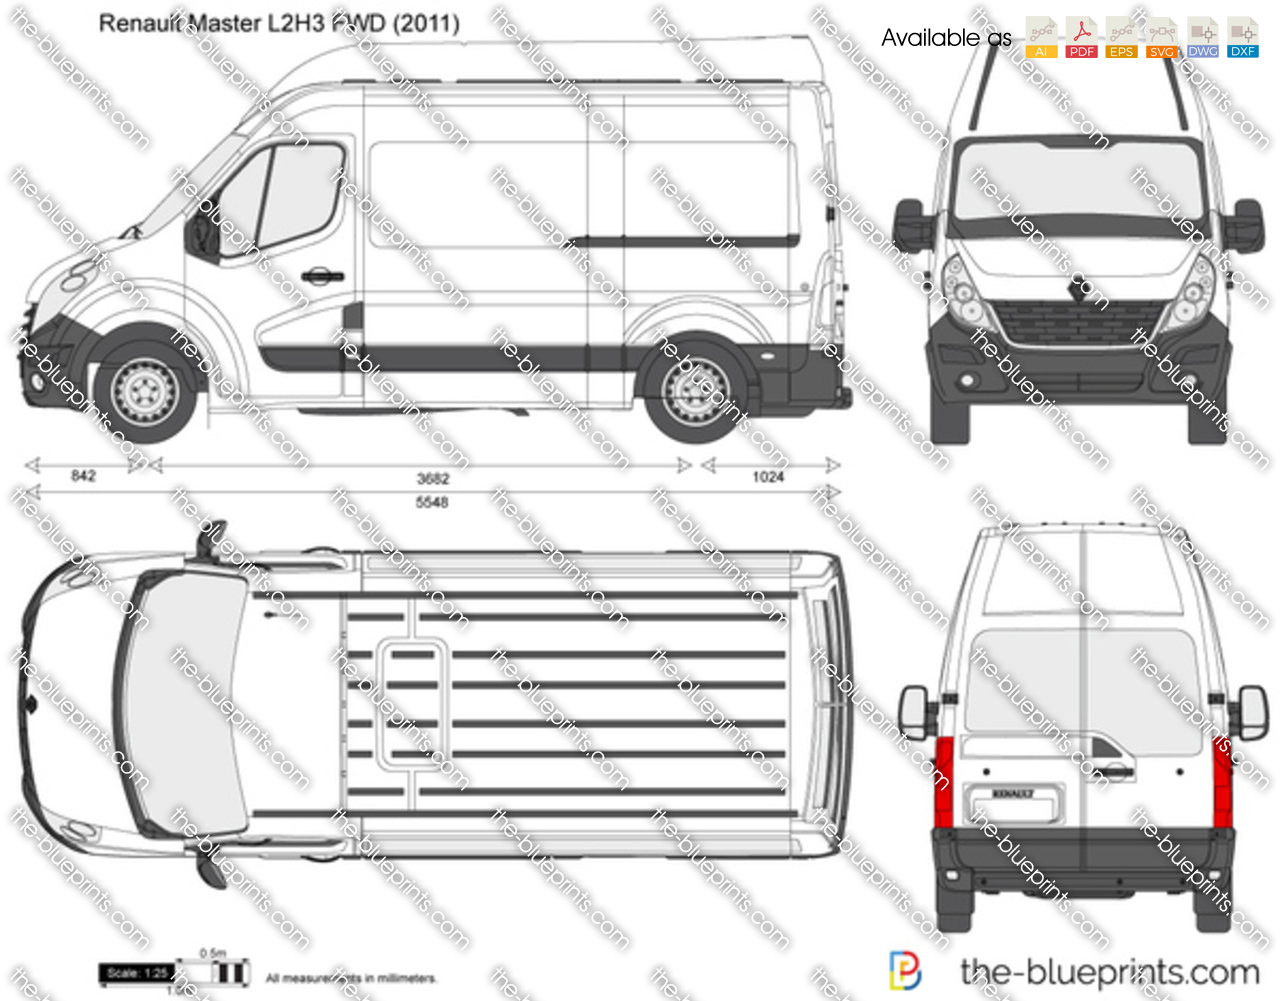 Renault Master L2h3 Fwd Vector Drawing